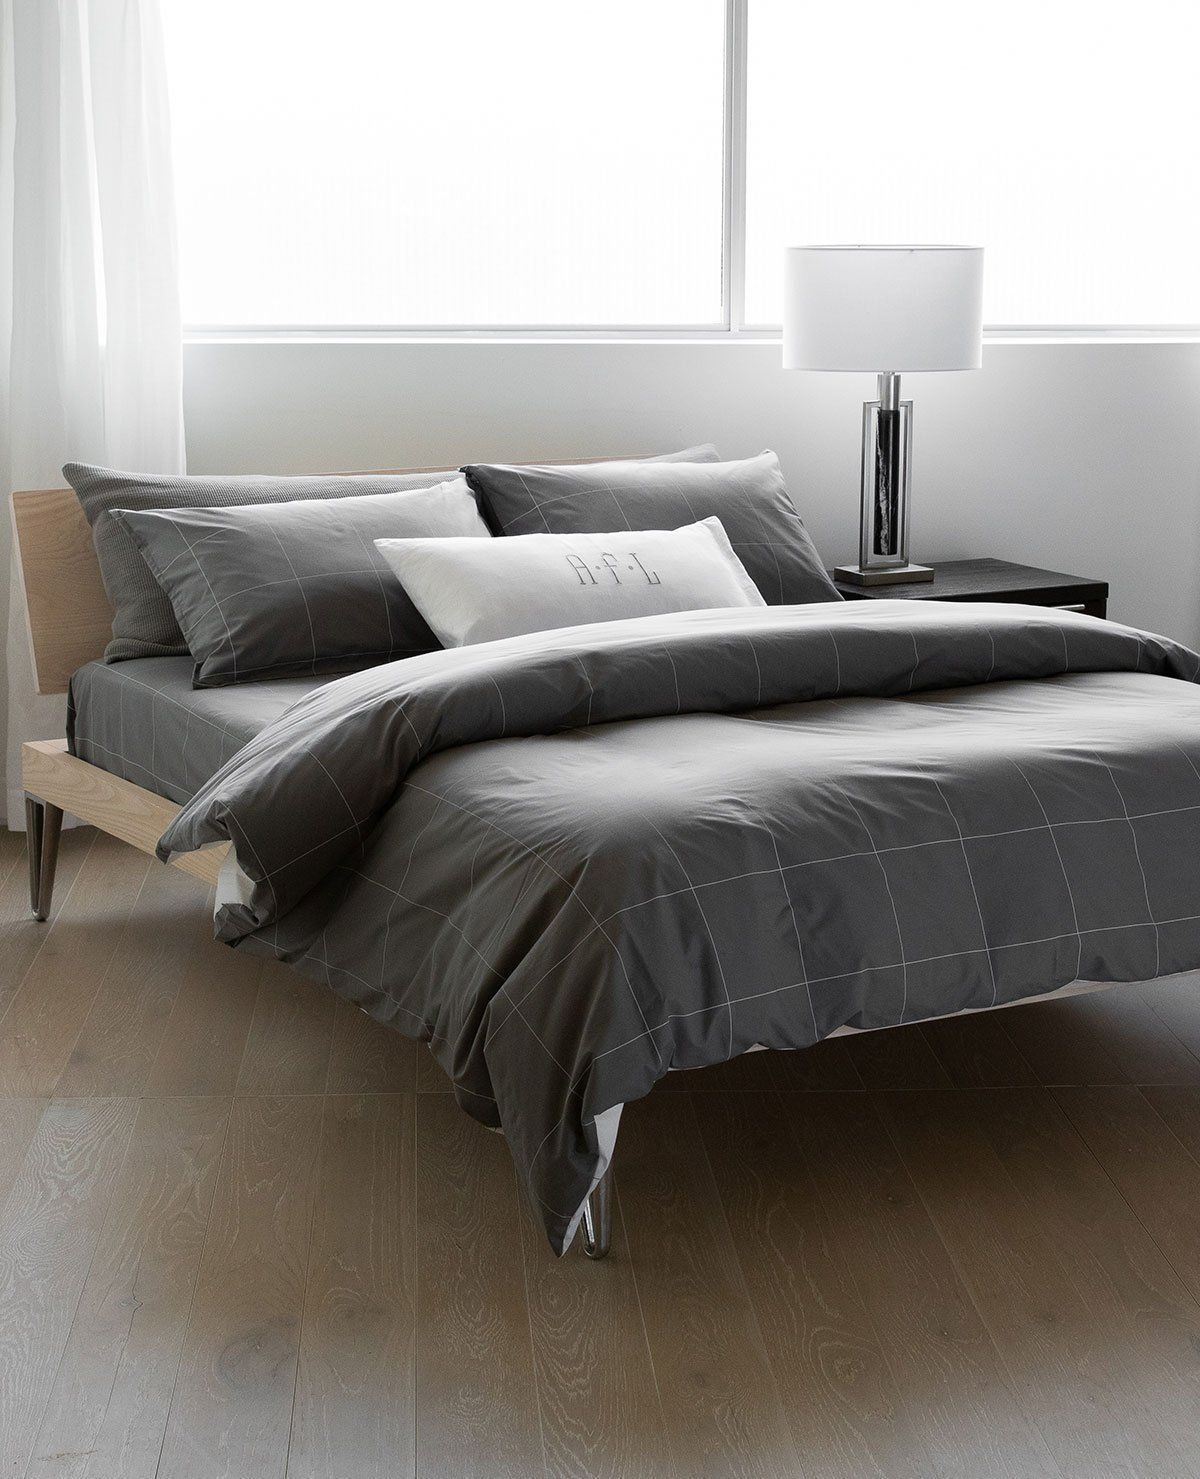 Brooklyn Grey/White Best duvet covers, Cool beds, Luxury